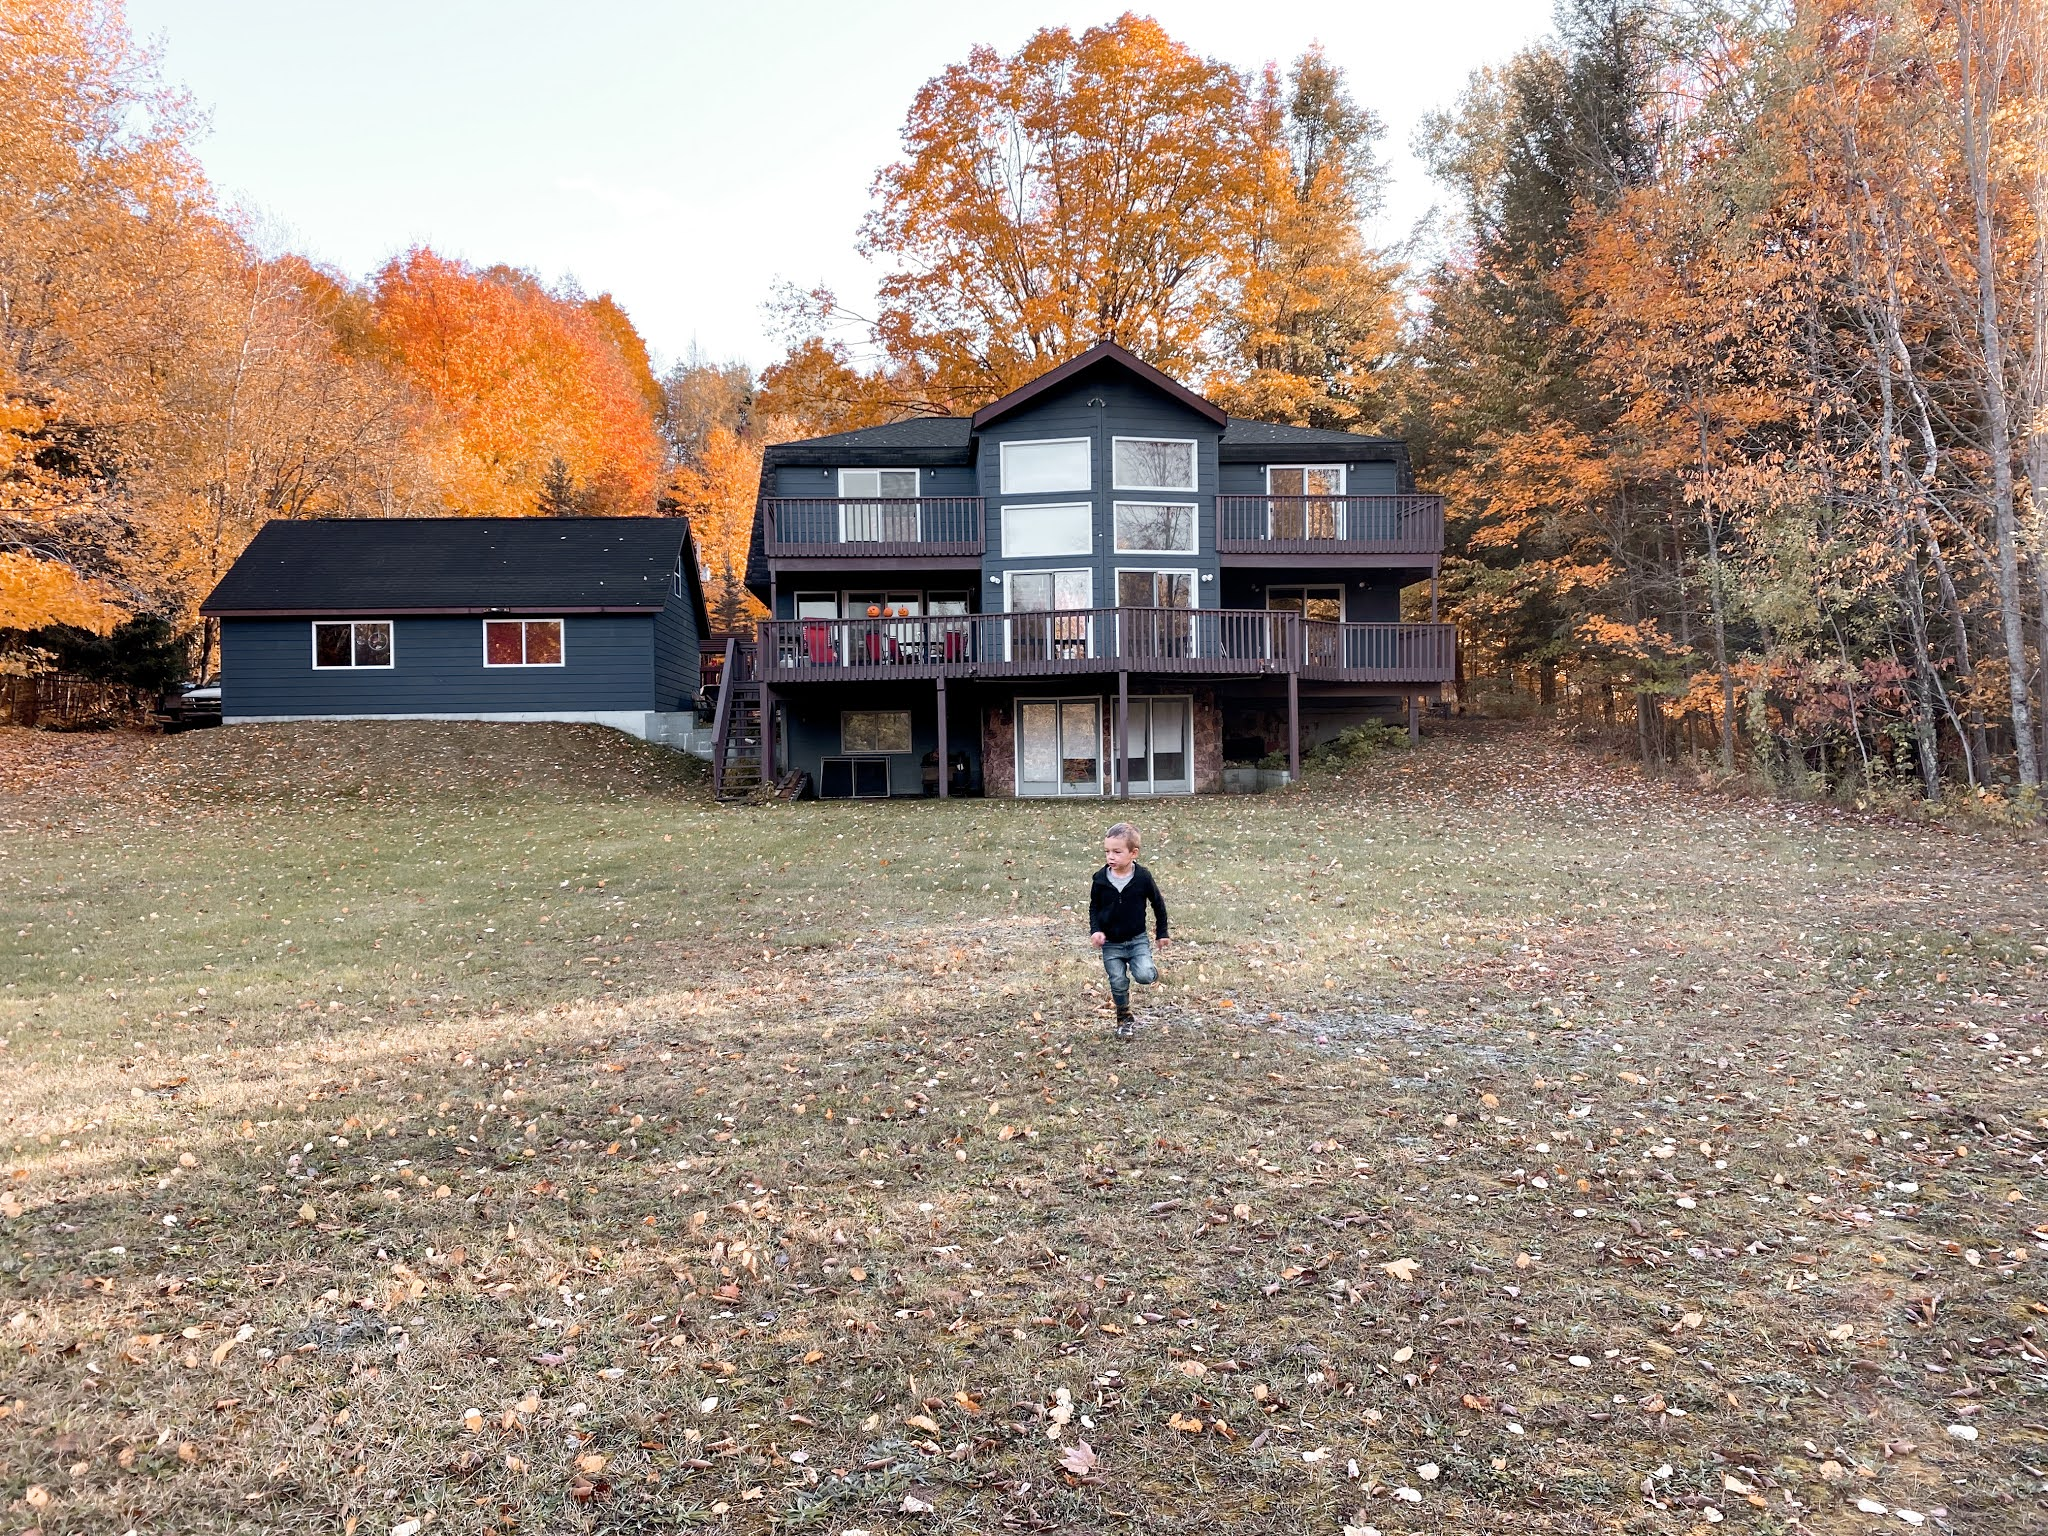 Home in Michigan in October | biblio-style.com